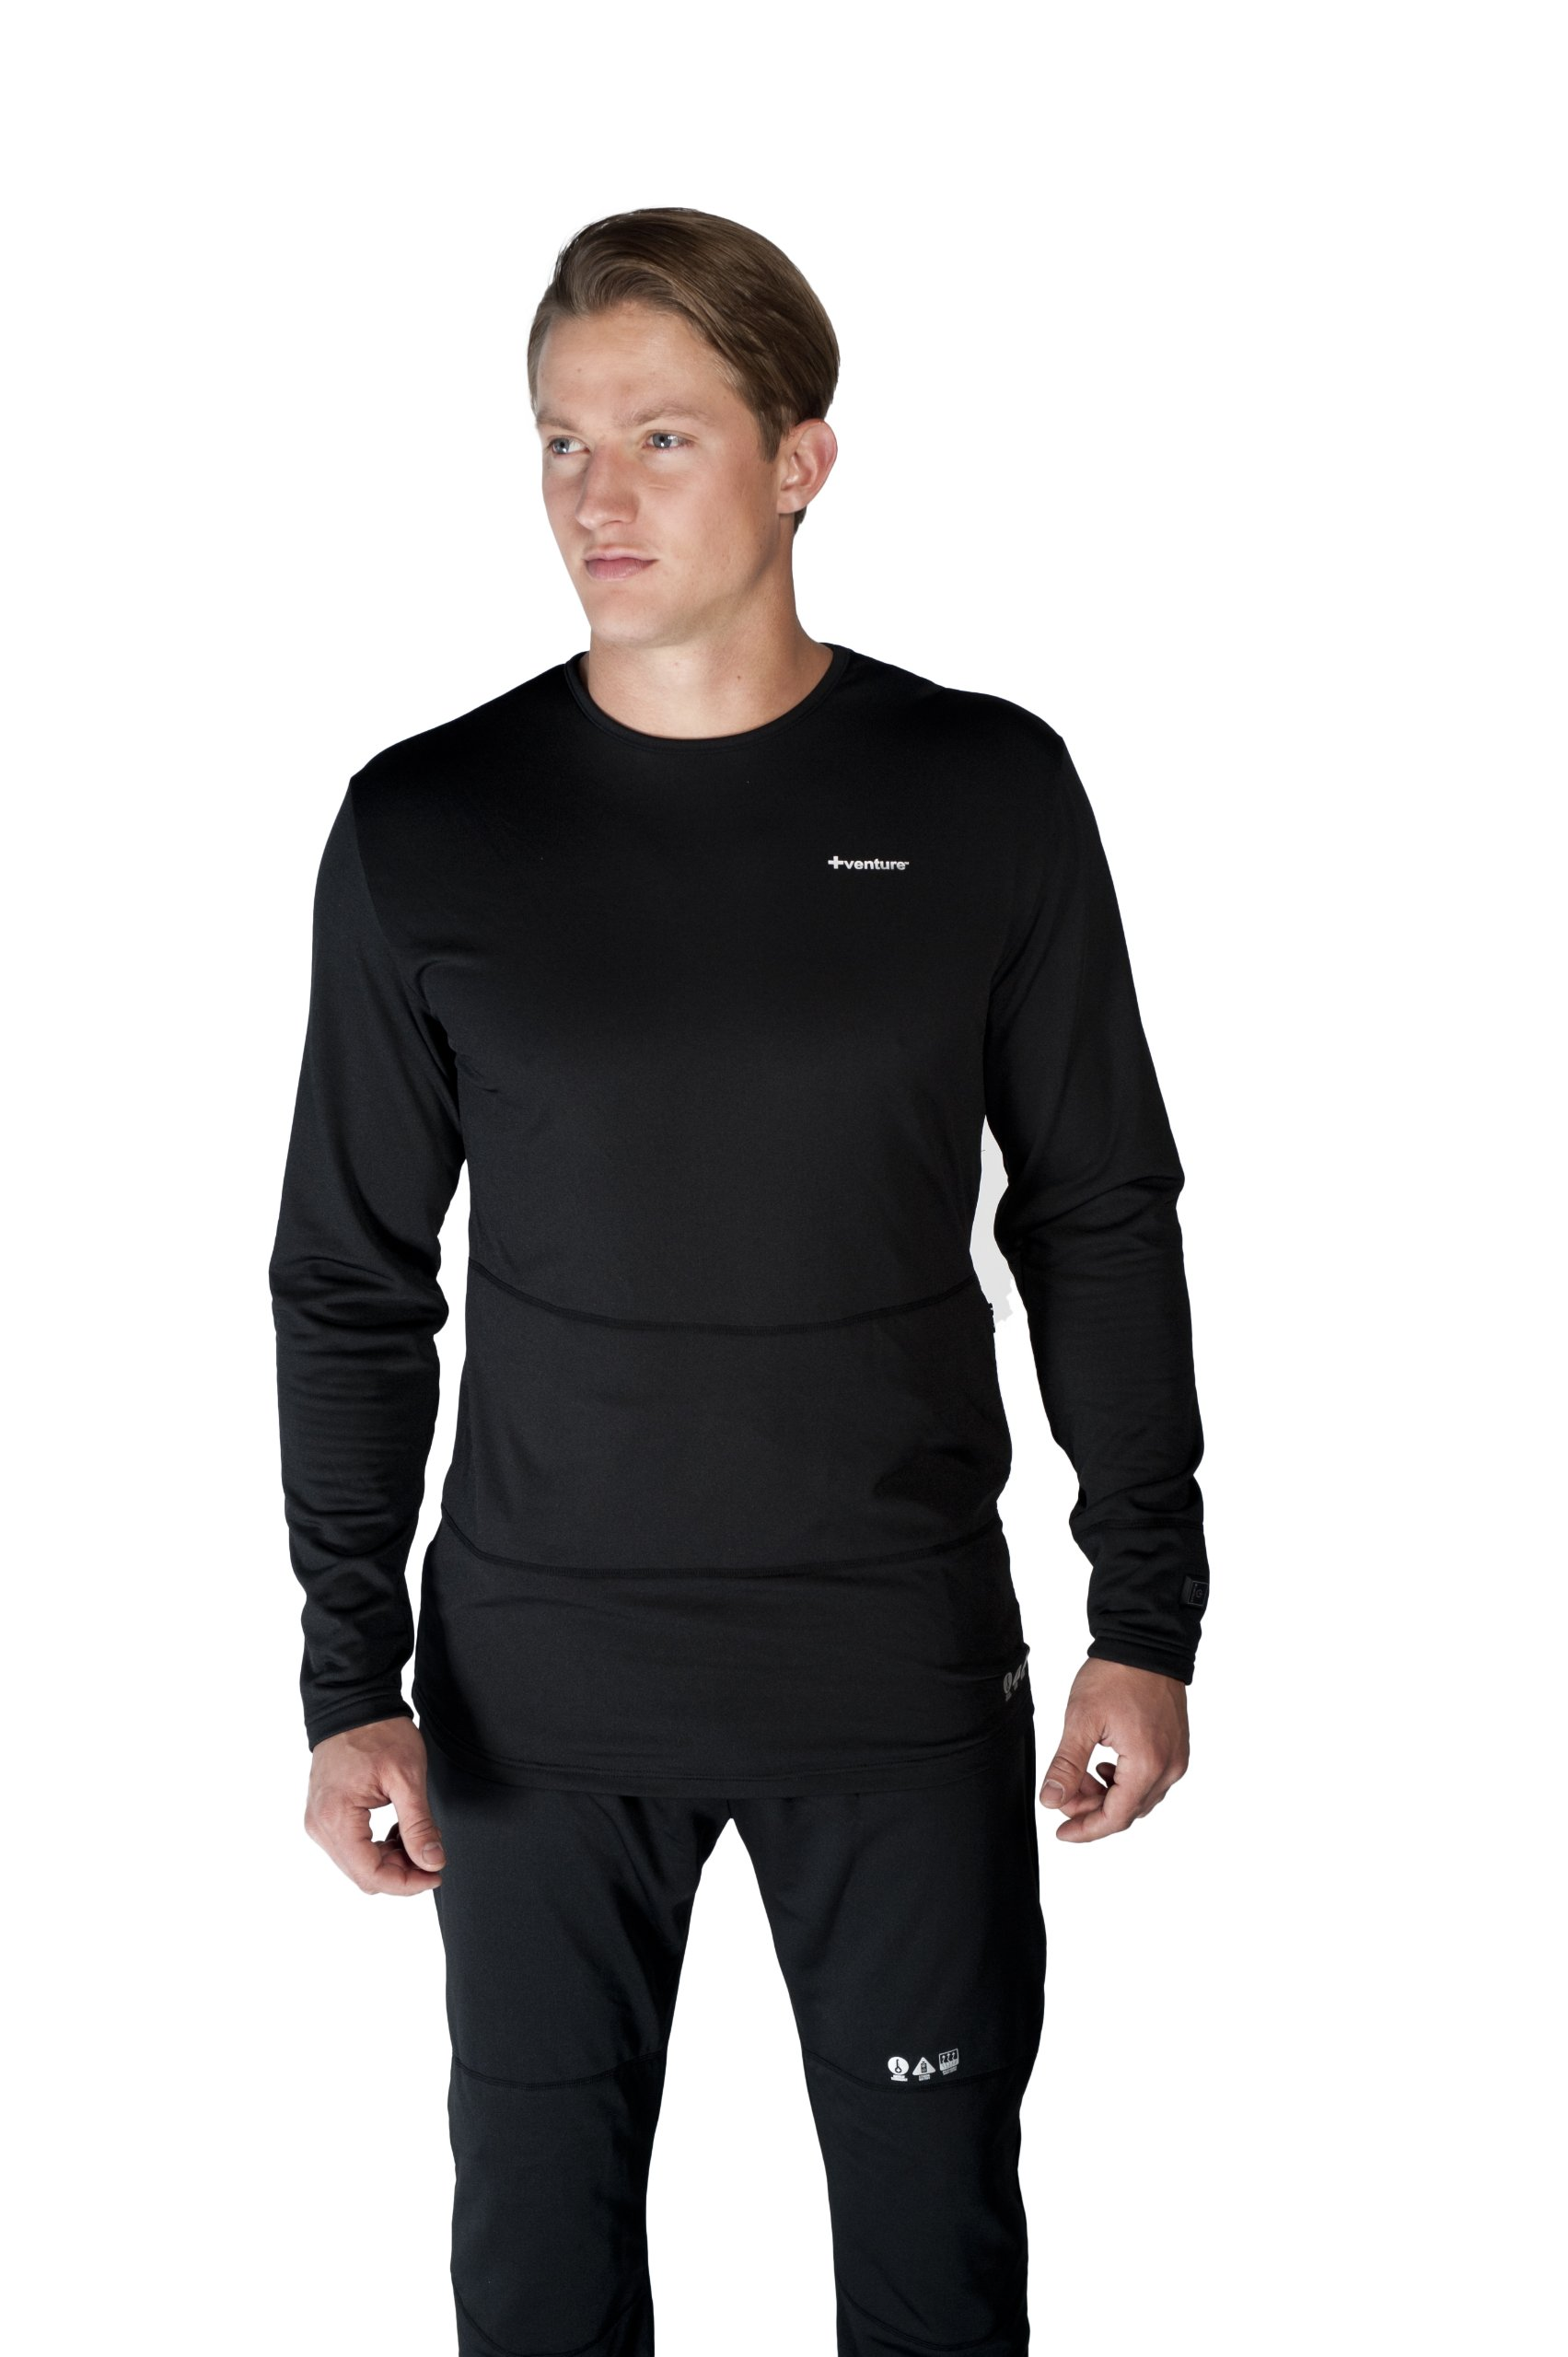 VentureHeat Battery Heated Base Layer Top with Tri-Zone Heating Area (Black, X-Large) by Venture Heat (Image #1)